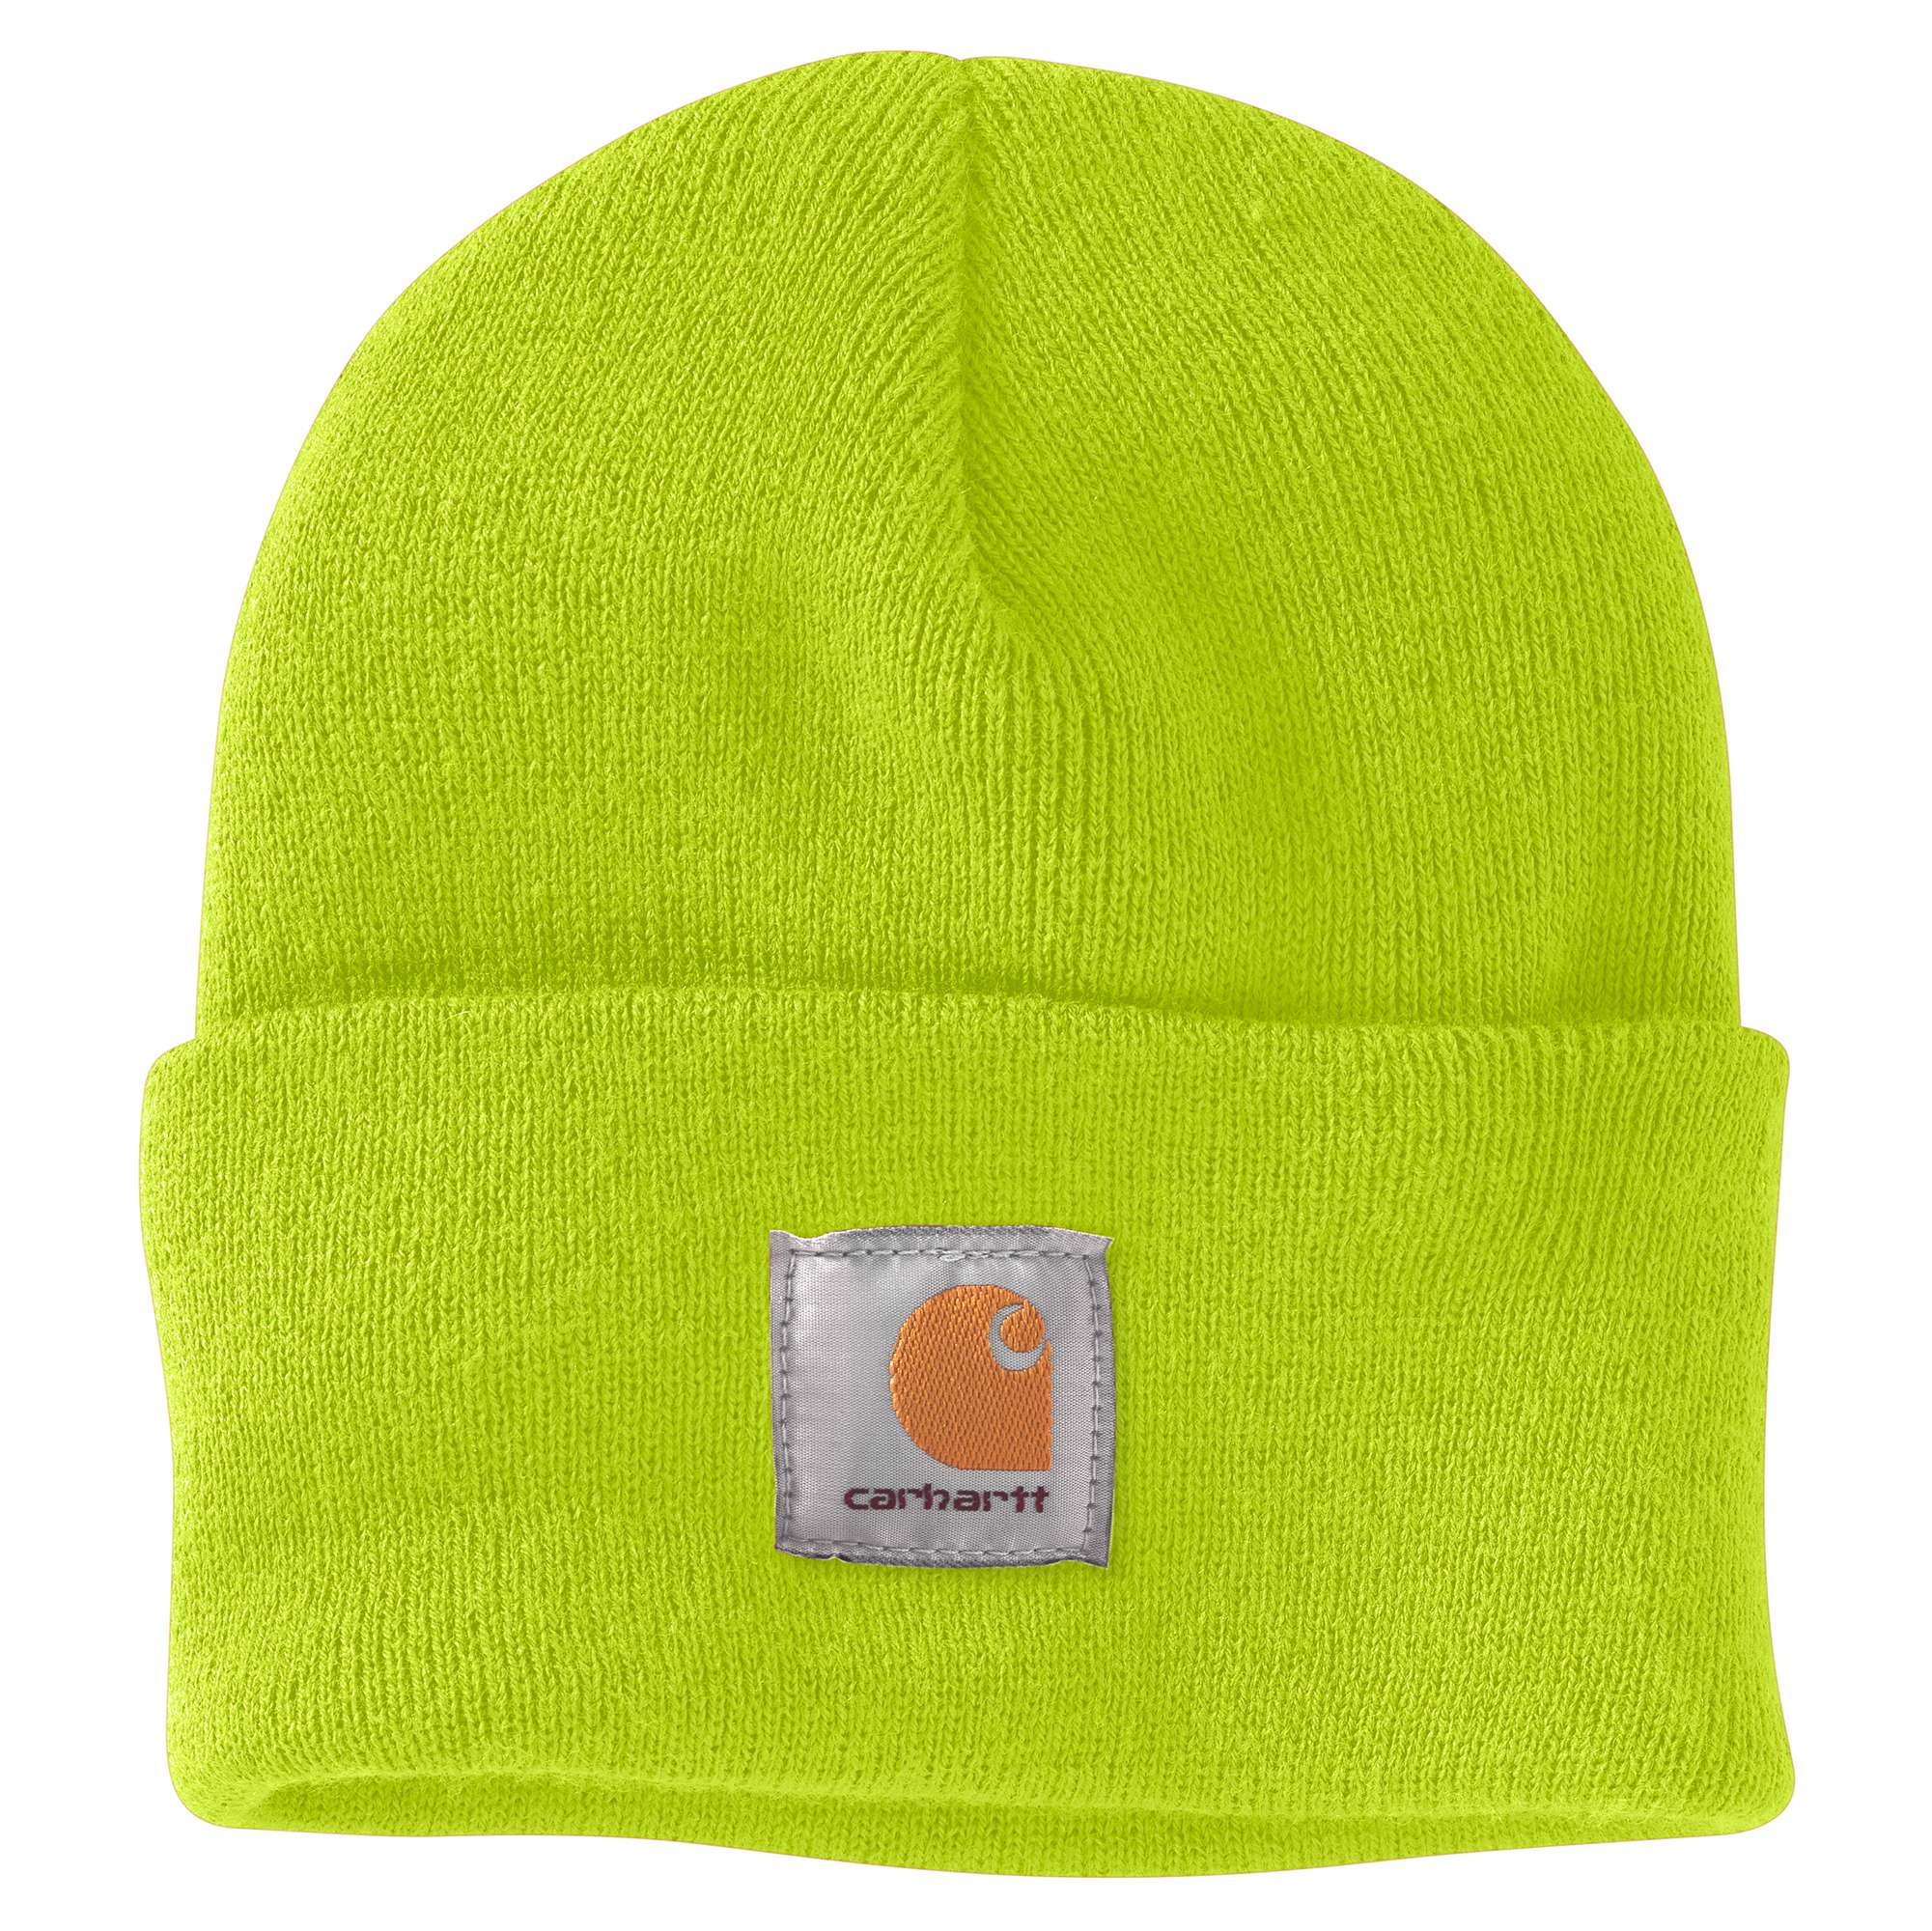 Watch Cap, Lime, swatch